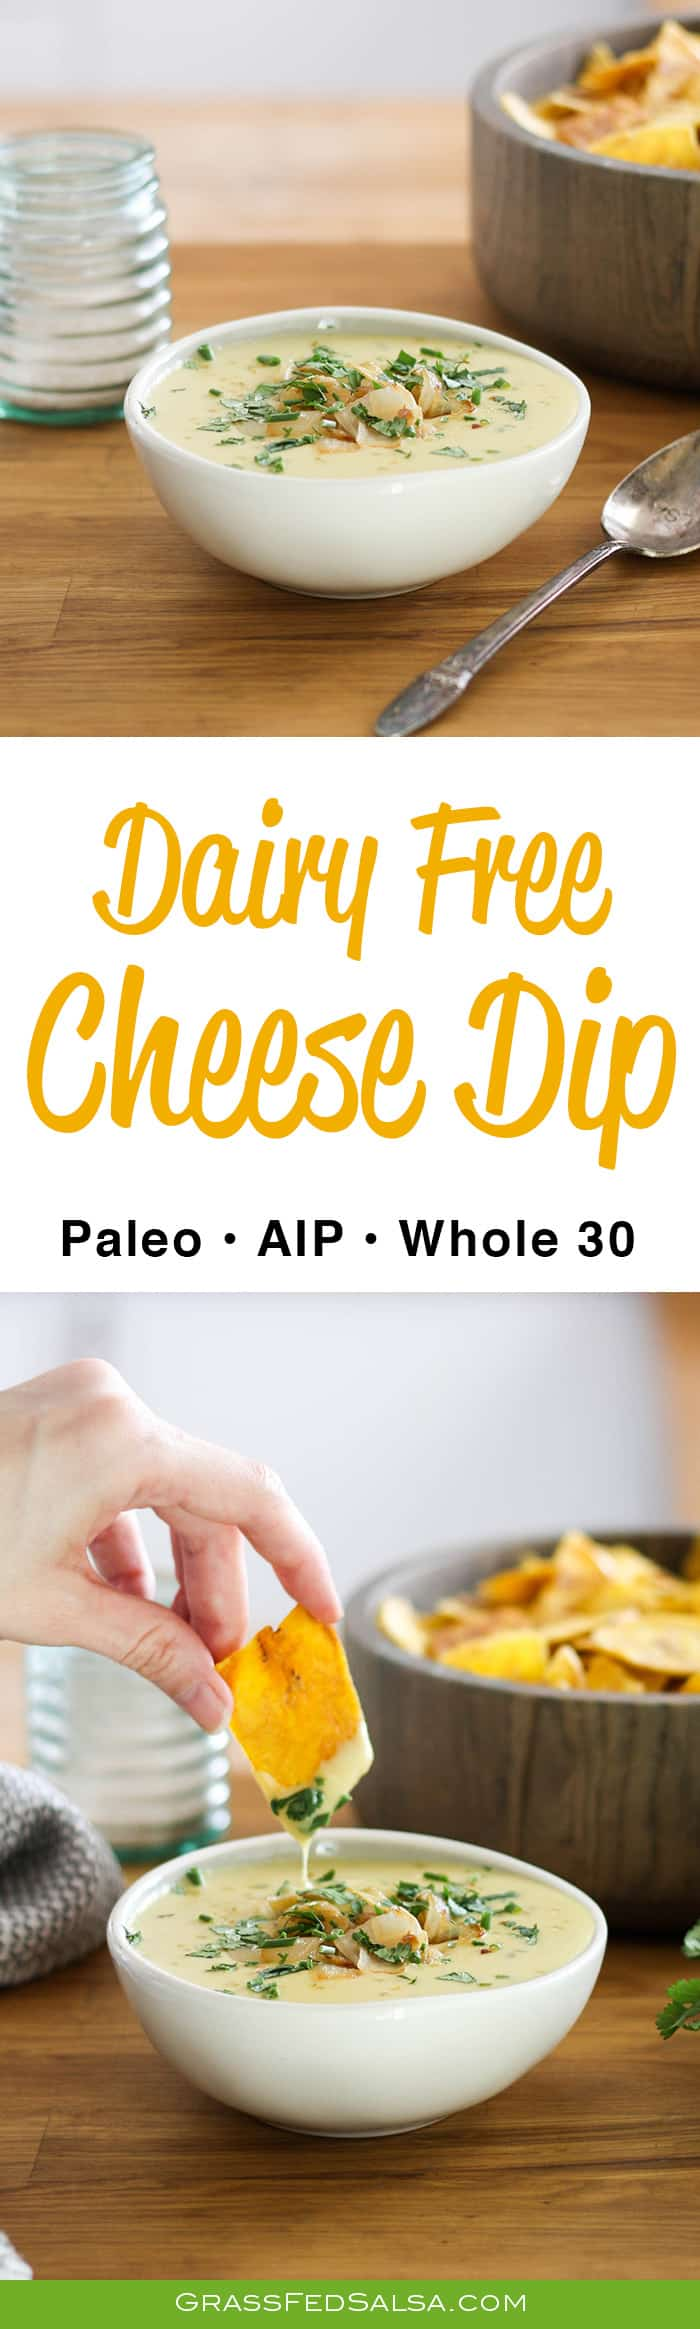 dairy free cheese dip for veggies or nachos. AIP, paleo, whole 30, and vegan.